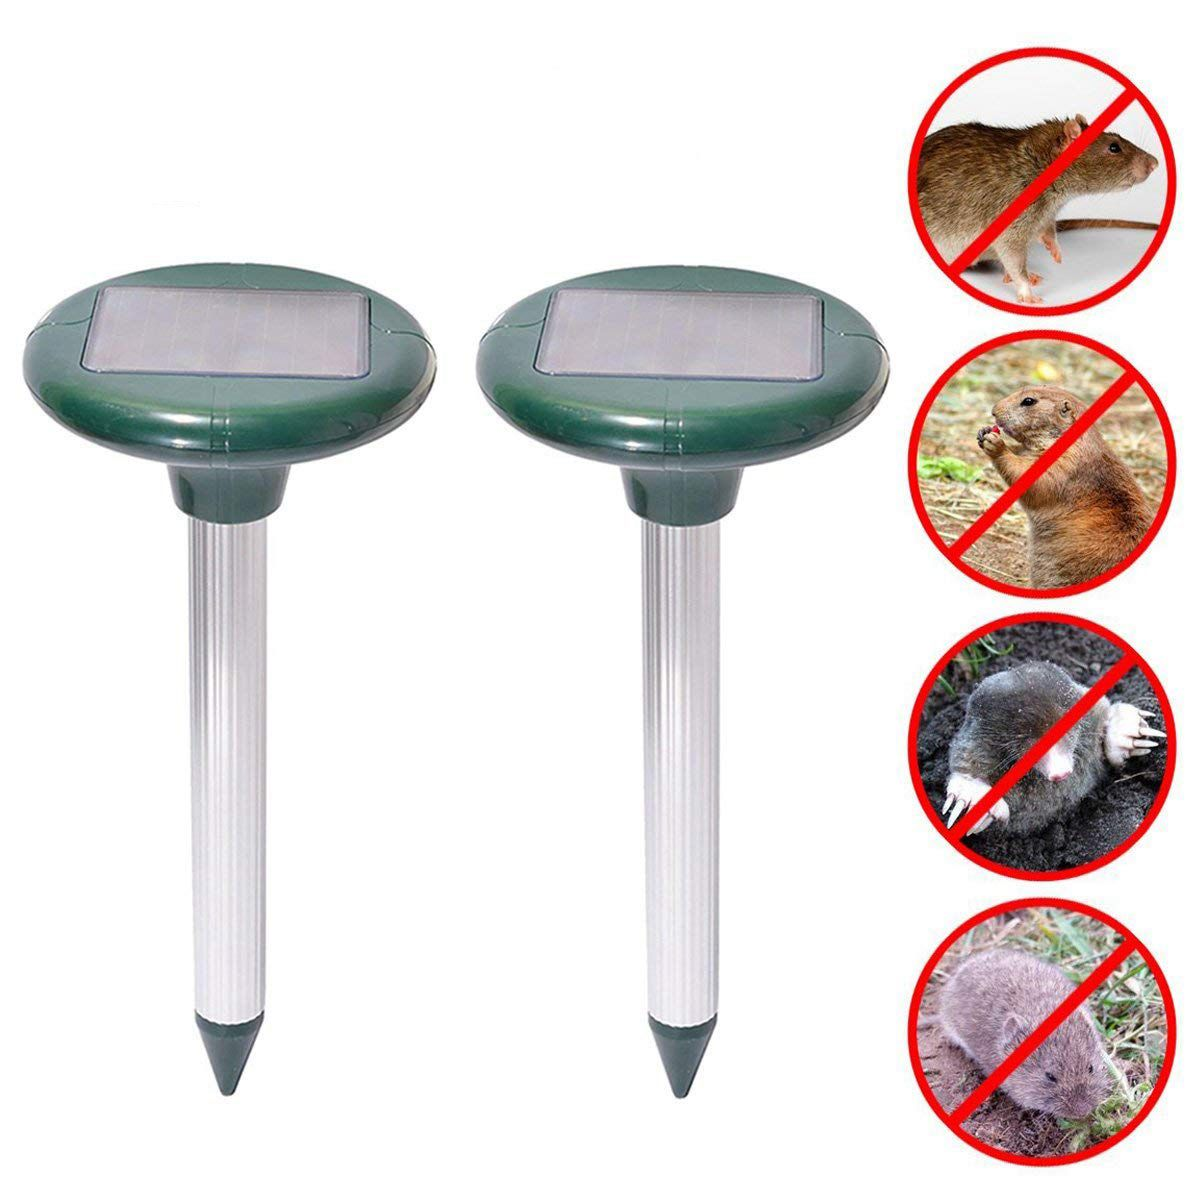 2 Pcs Mole Repeller Ultrasonic Solar Snake Gopher Repeller Mice Rats Rodent for Lawn Garden Yards(China)